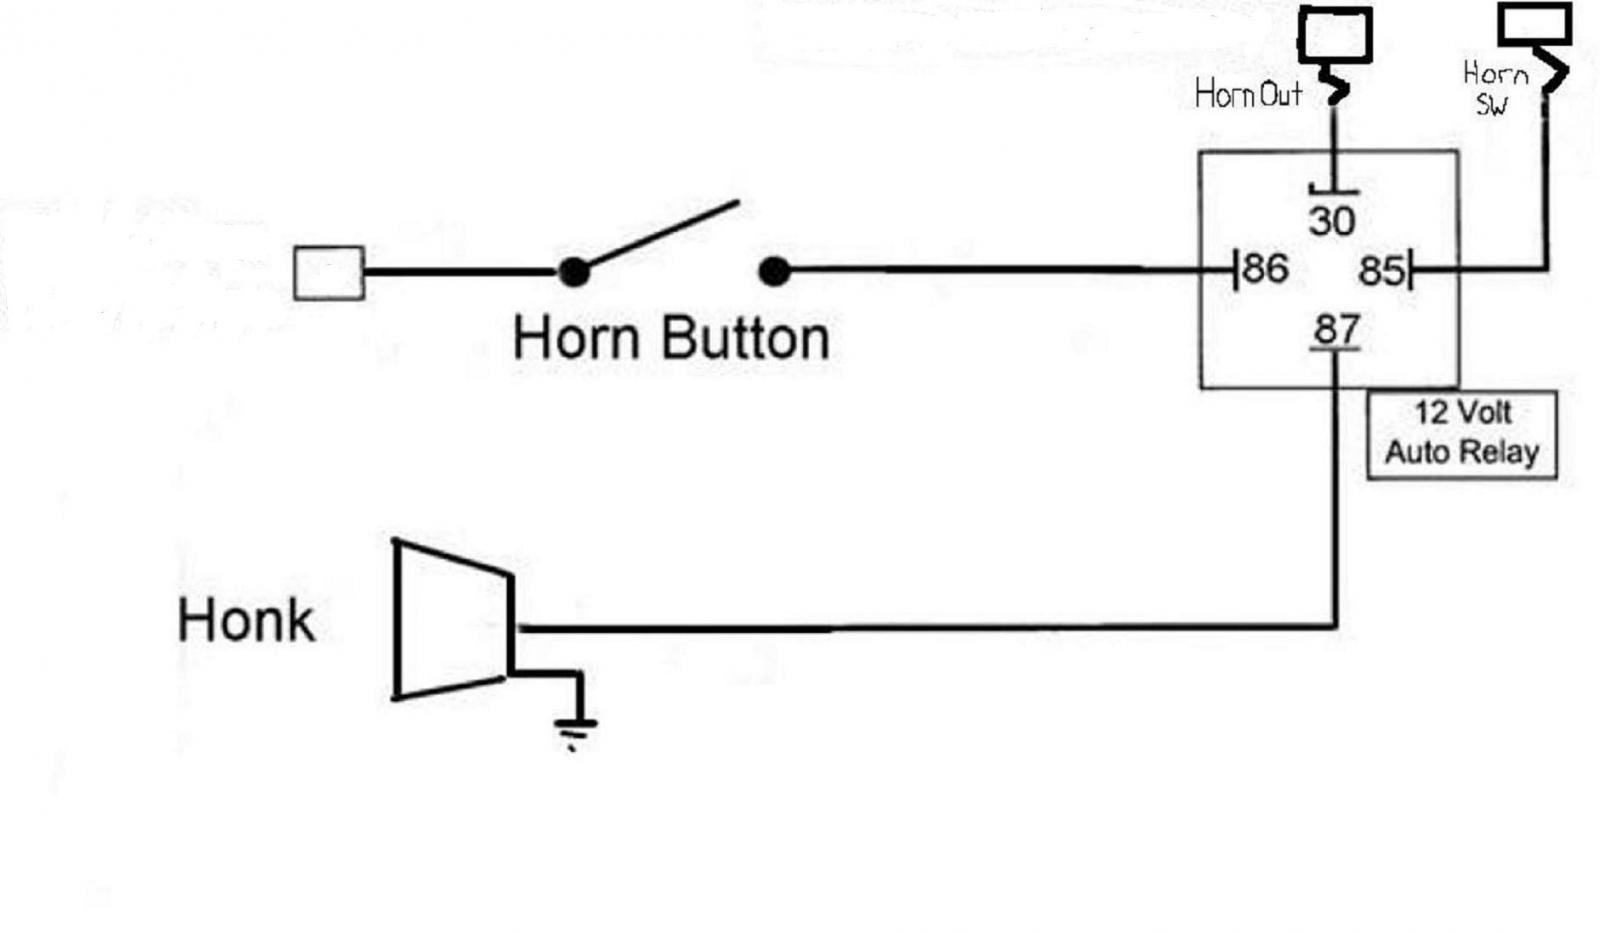 Atv Horn Wiring - Free Wiring Diagram For You • - Air Horns Wiring Diagram